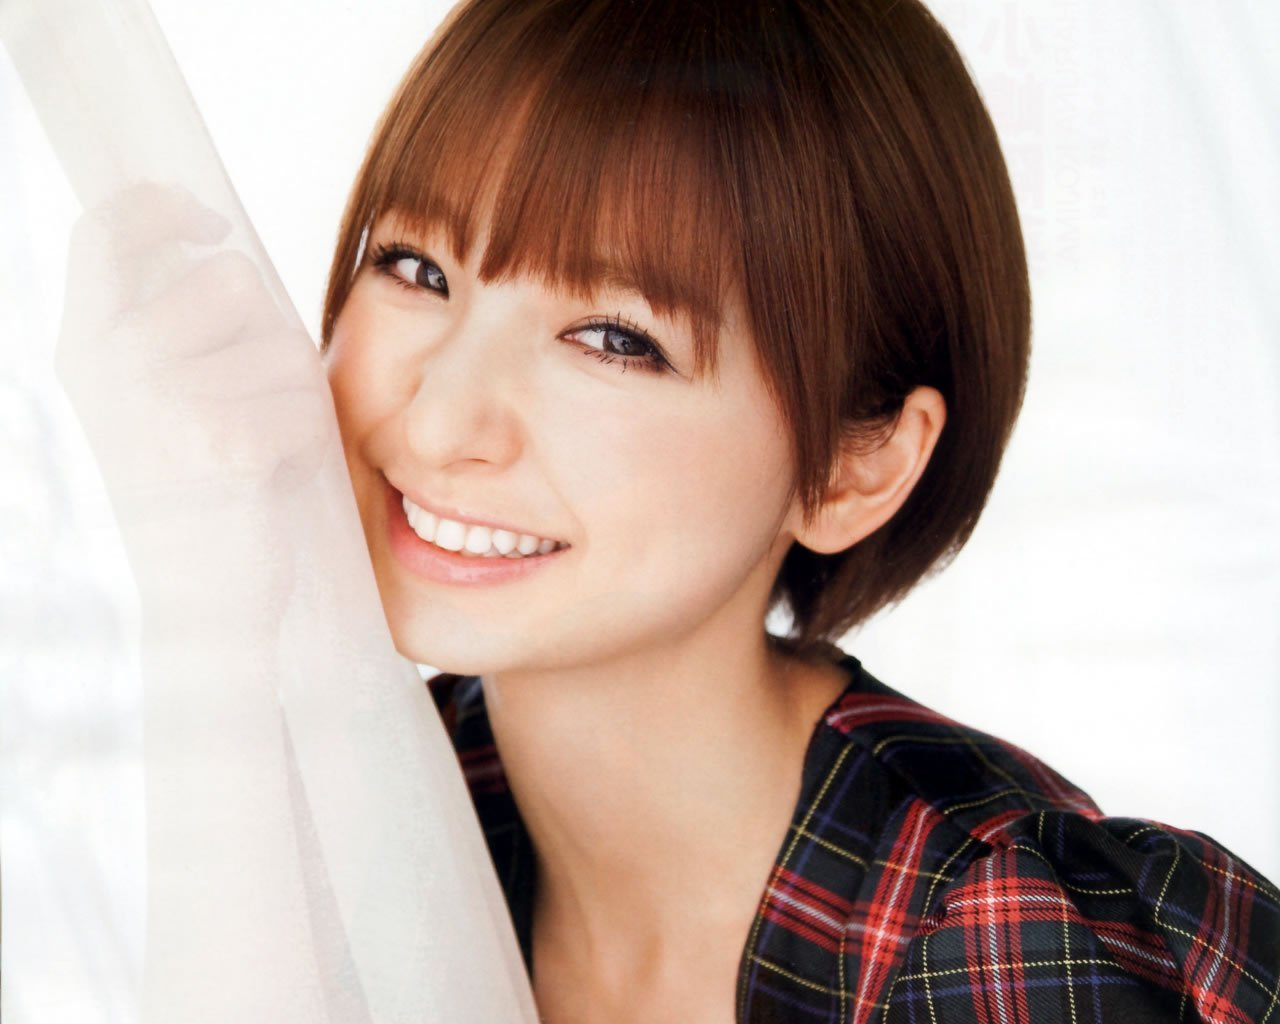 img 5a6c05df9448a.png?resize=1200,630 - 篠田麻里子は負けず嫌いの性格で姉御肌かも